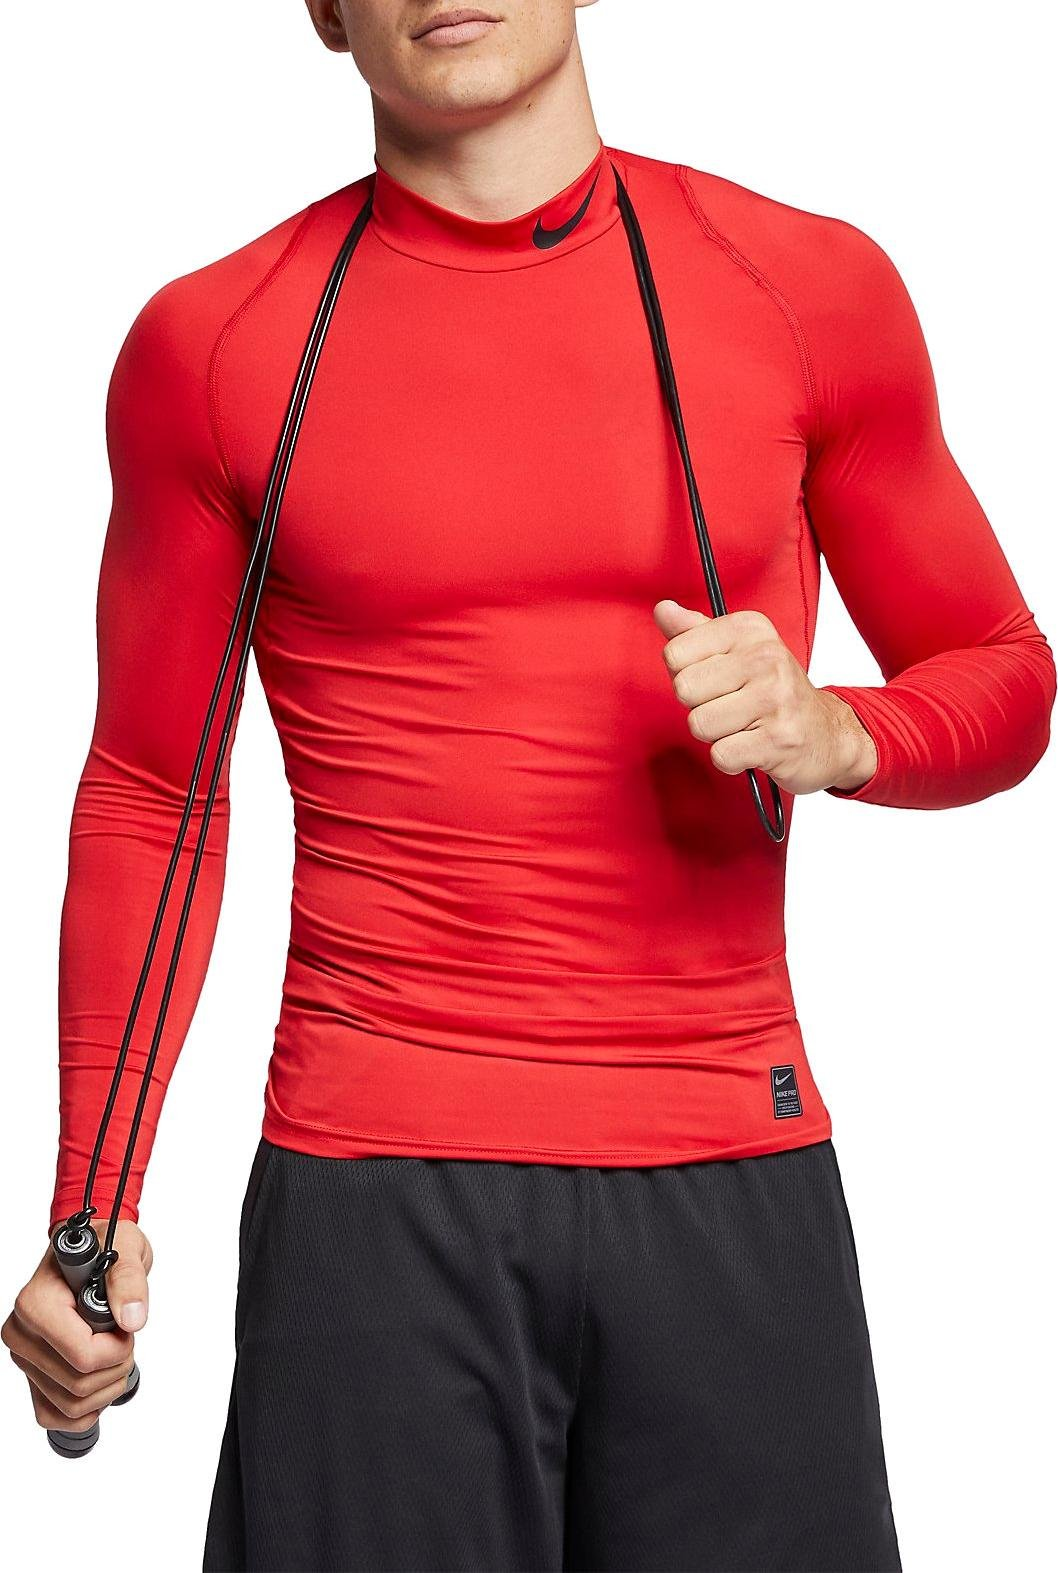 Chemise de compression Nike M NP TOP LS COMP MOCK